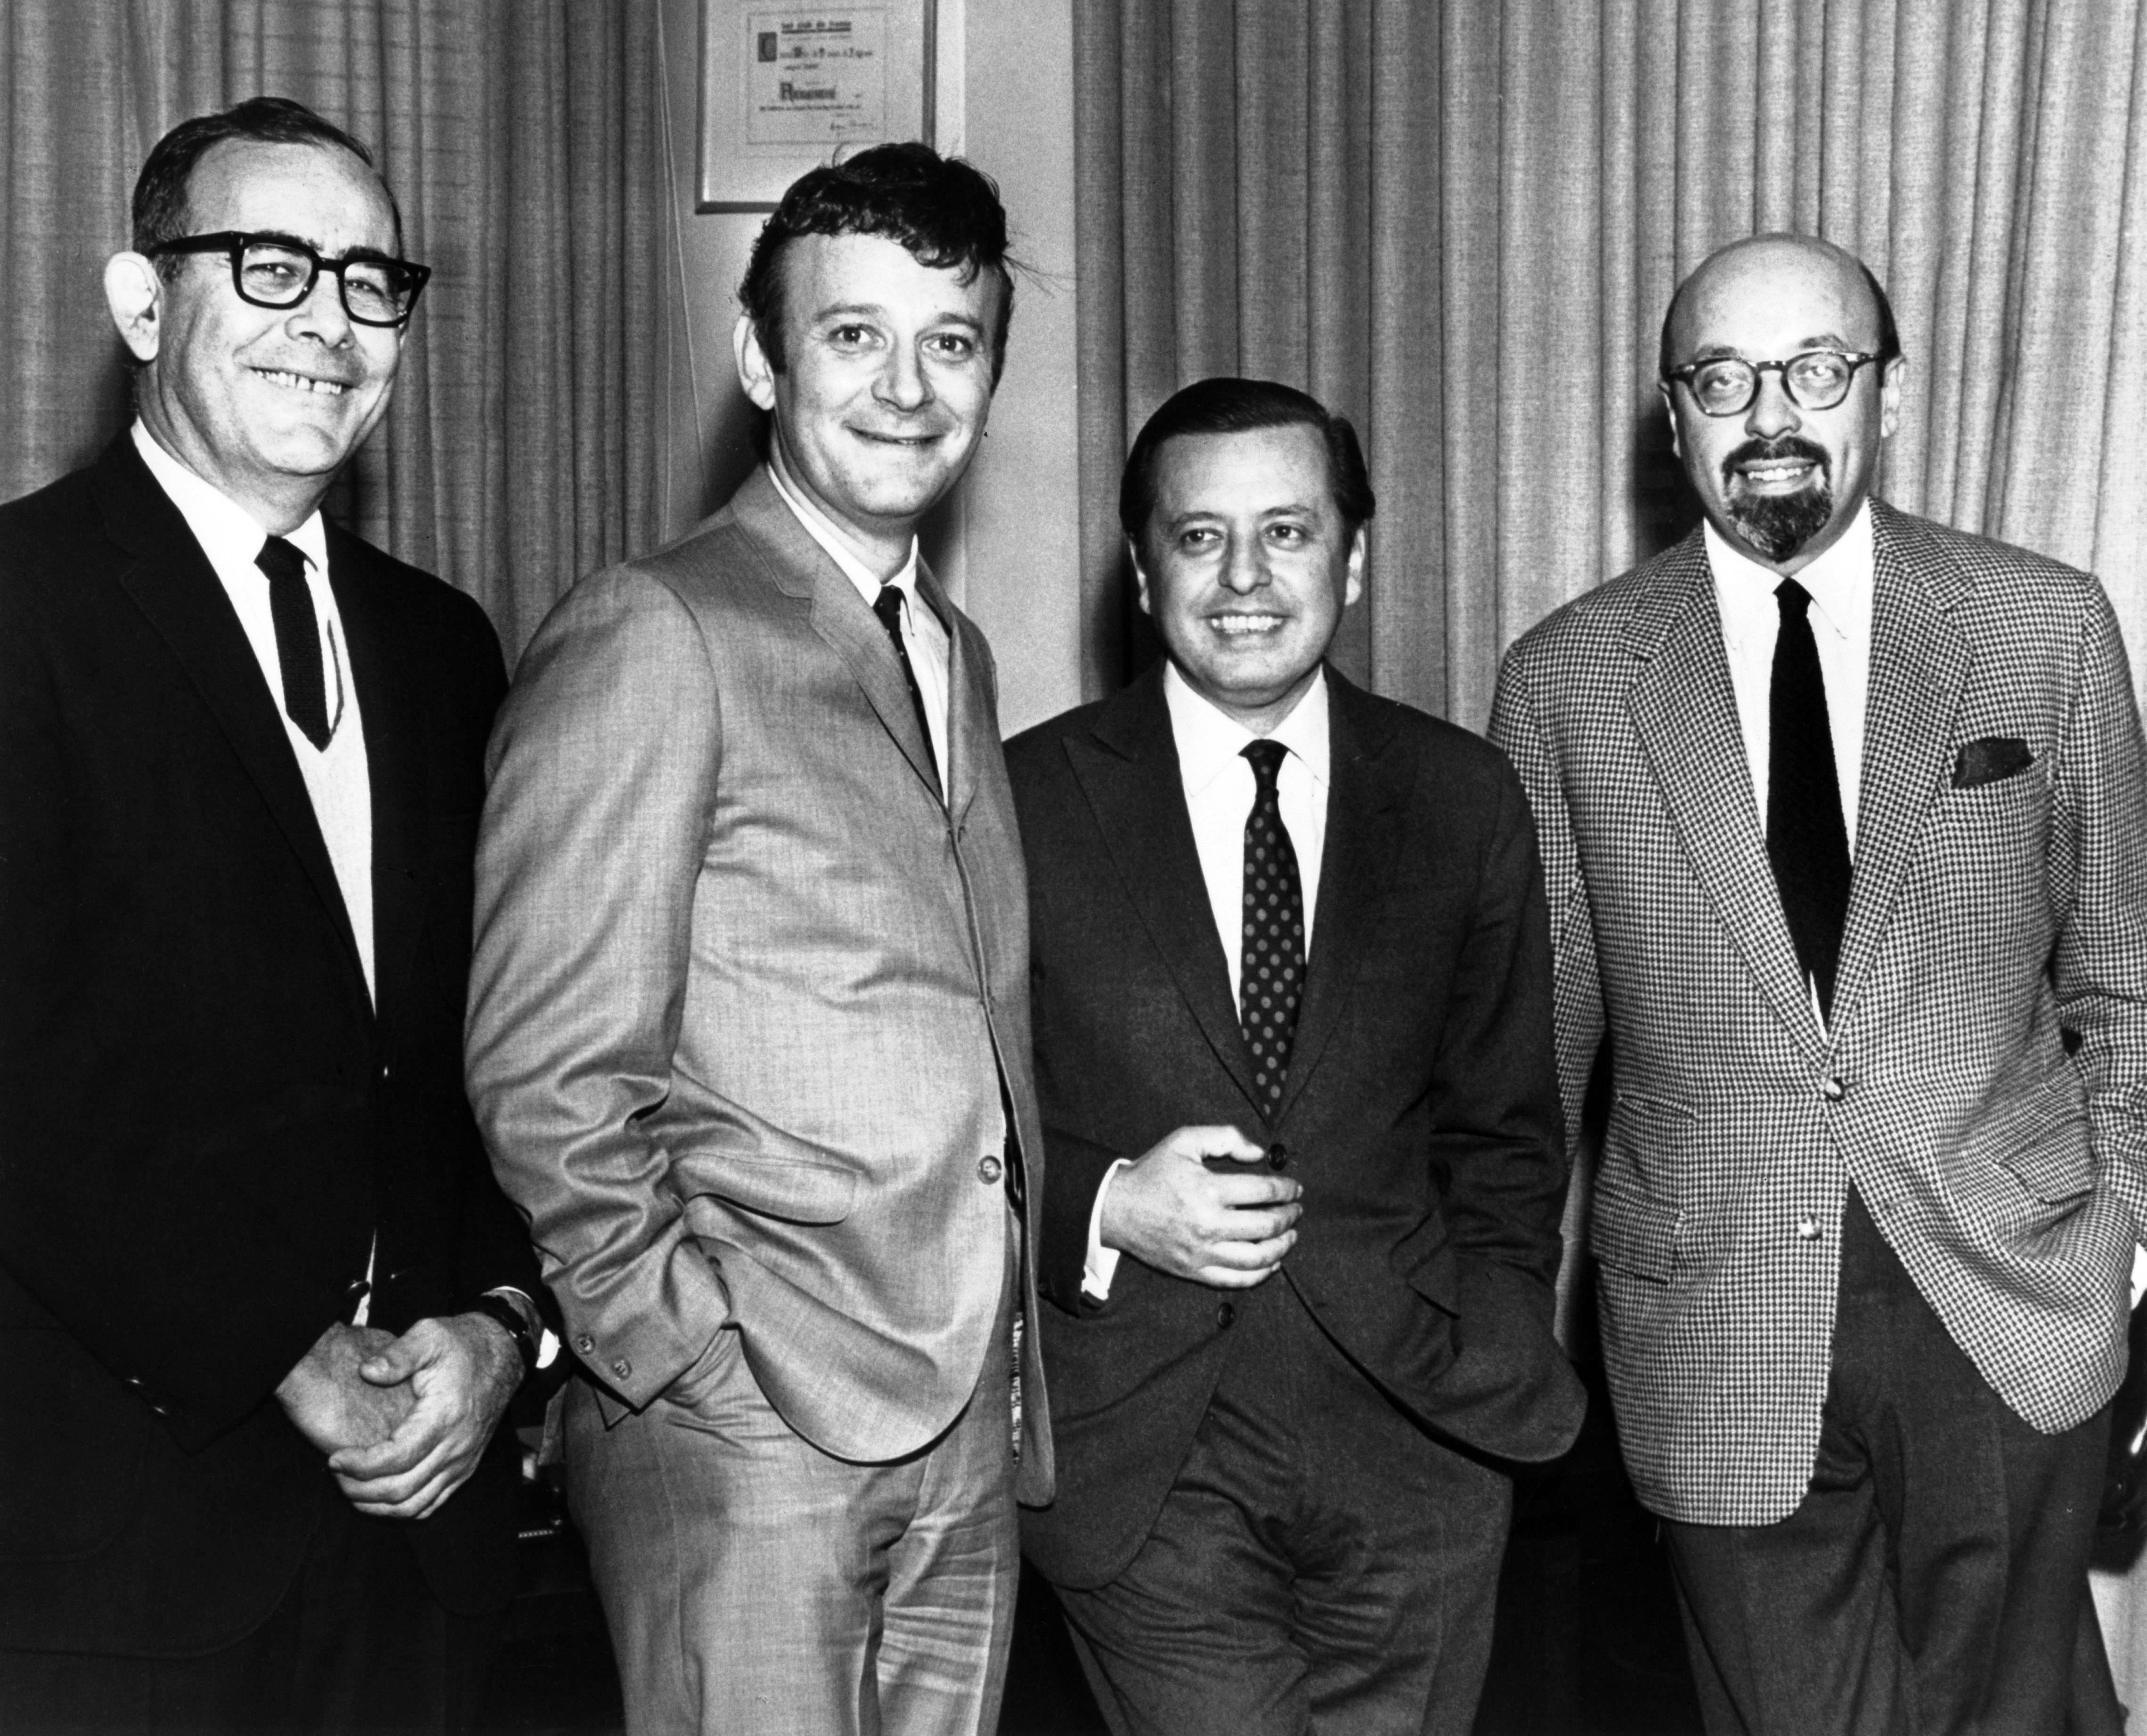 UNITED STATES - JANUARY 01: Photo of Bert BERNS and Ahmet ERTEGUN; L-R: ?, Bert Berns, ?, Ahmet Ertegun (founder of Atlantic Records) posed, (Photo by Charlie Gillett Collection/Redferns)